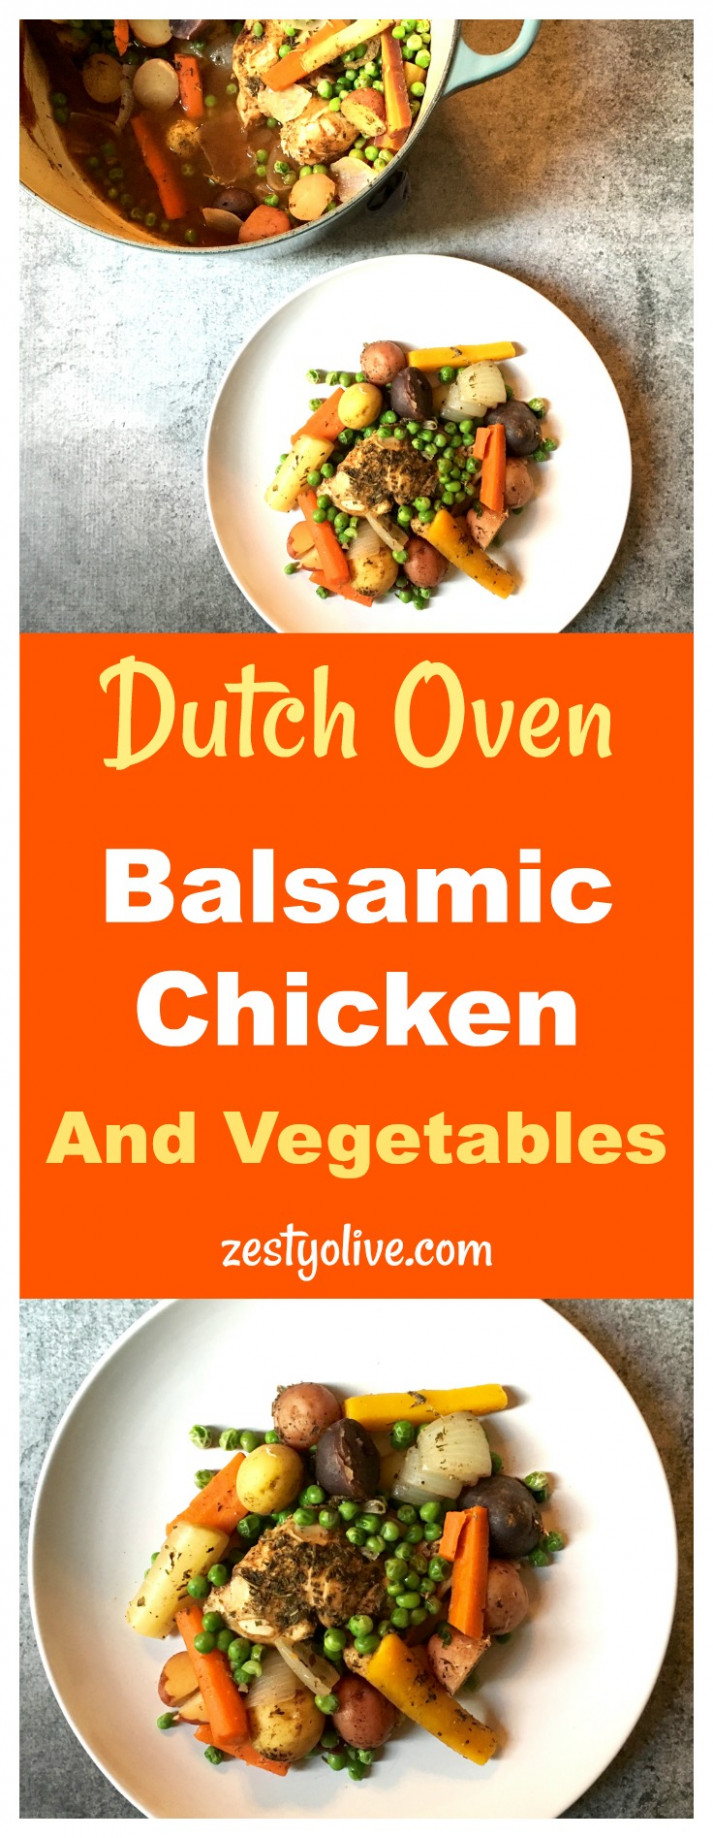 Dutch Oven Balsamic Chicken And Vegetables * Zesty Olive ...